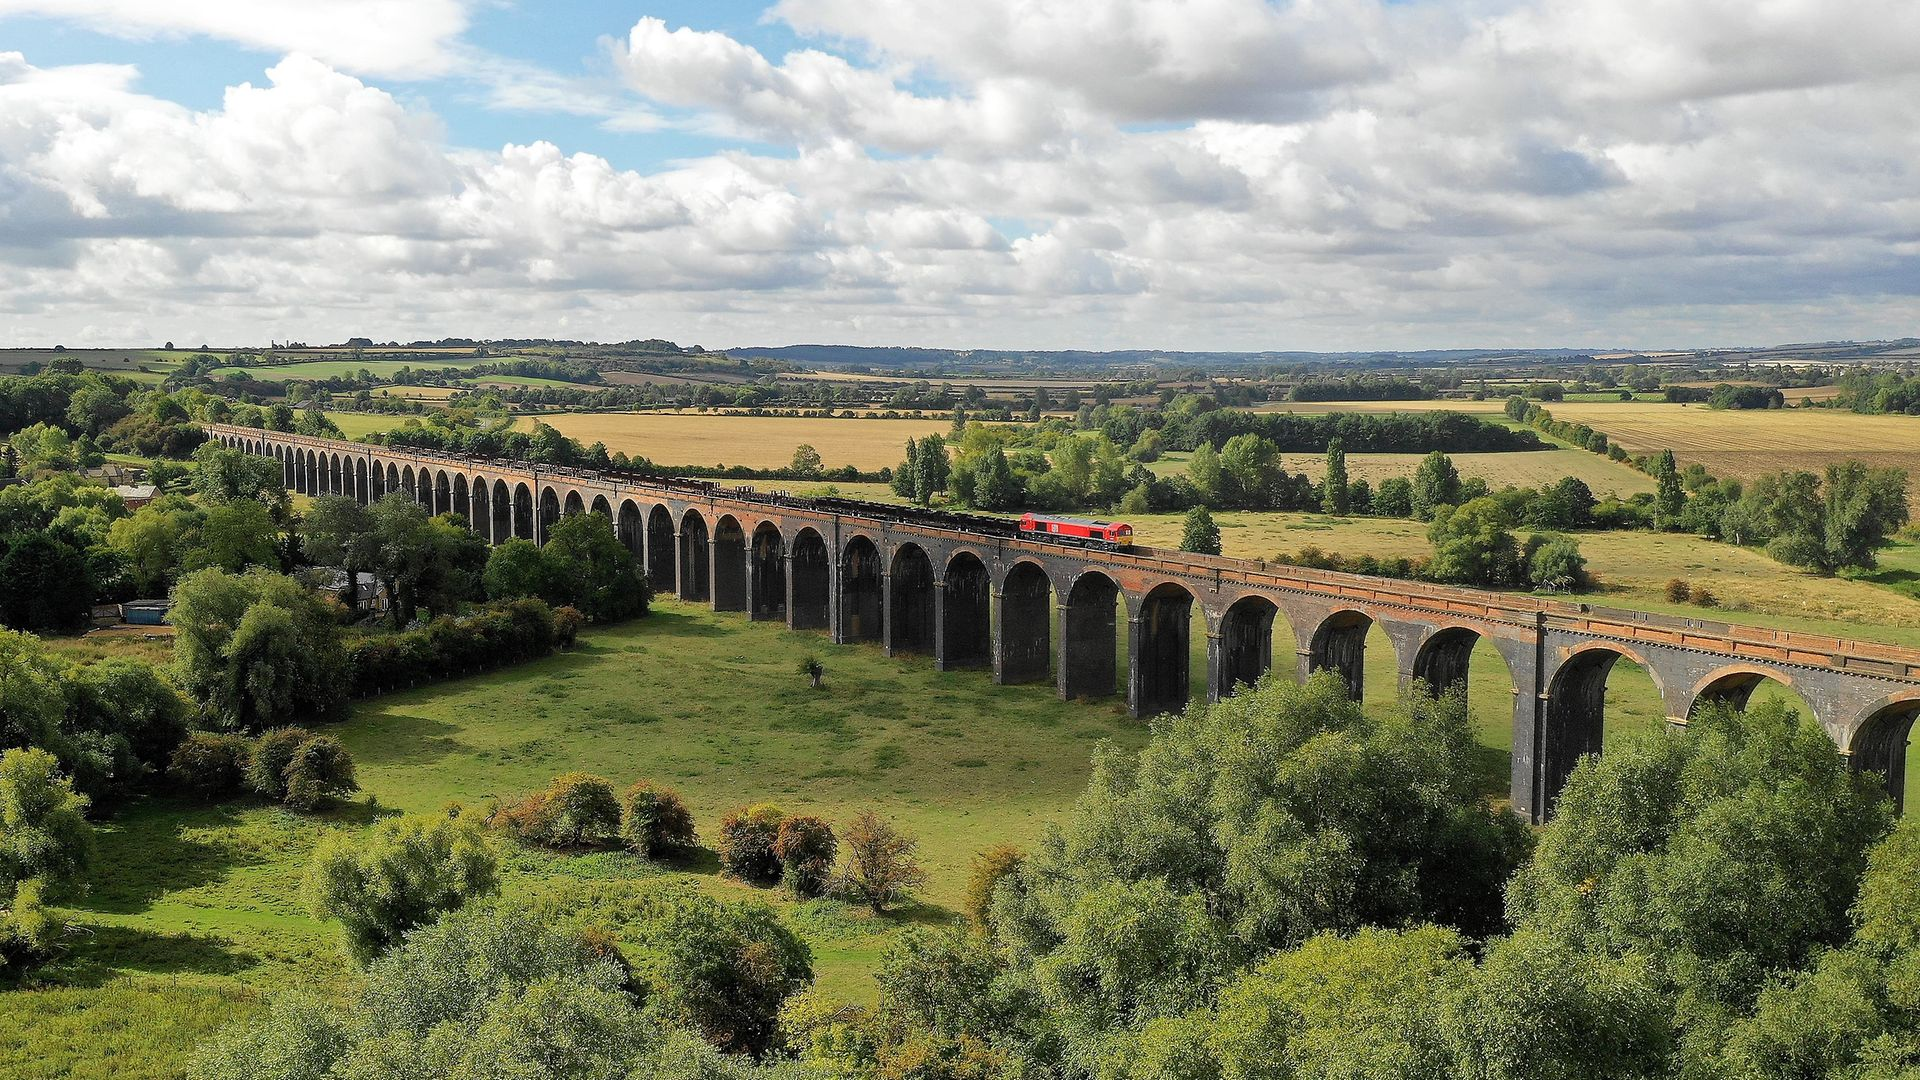 UK rail freight service in the countryside